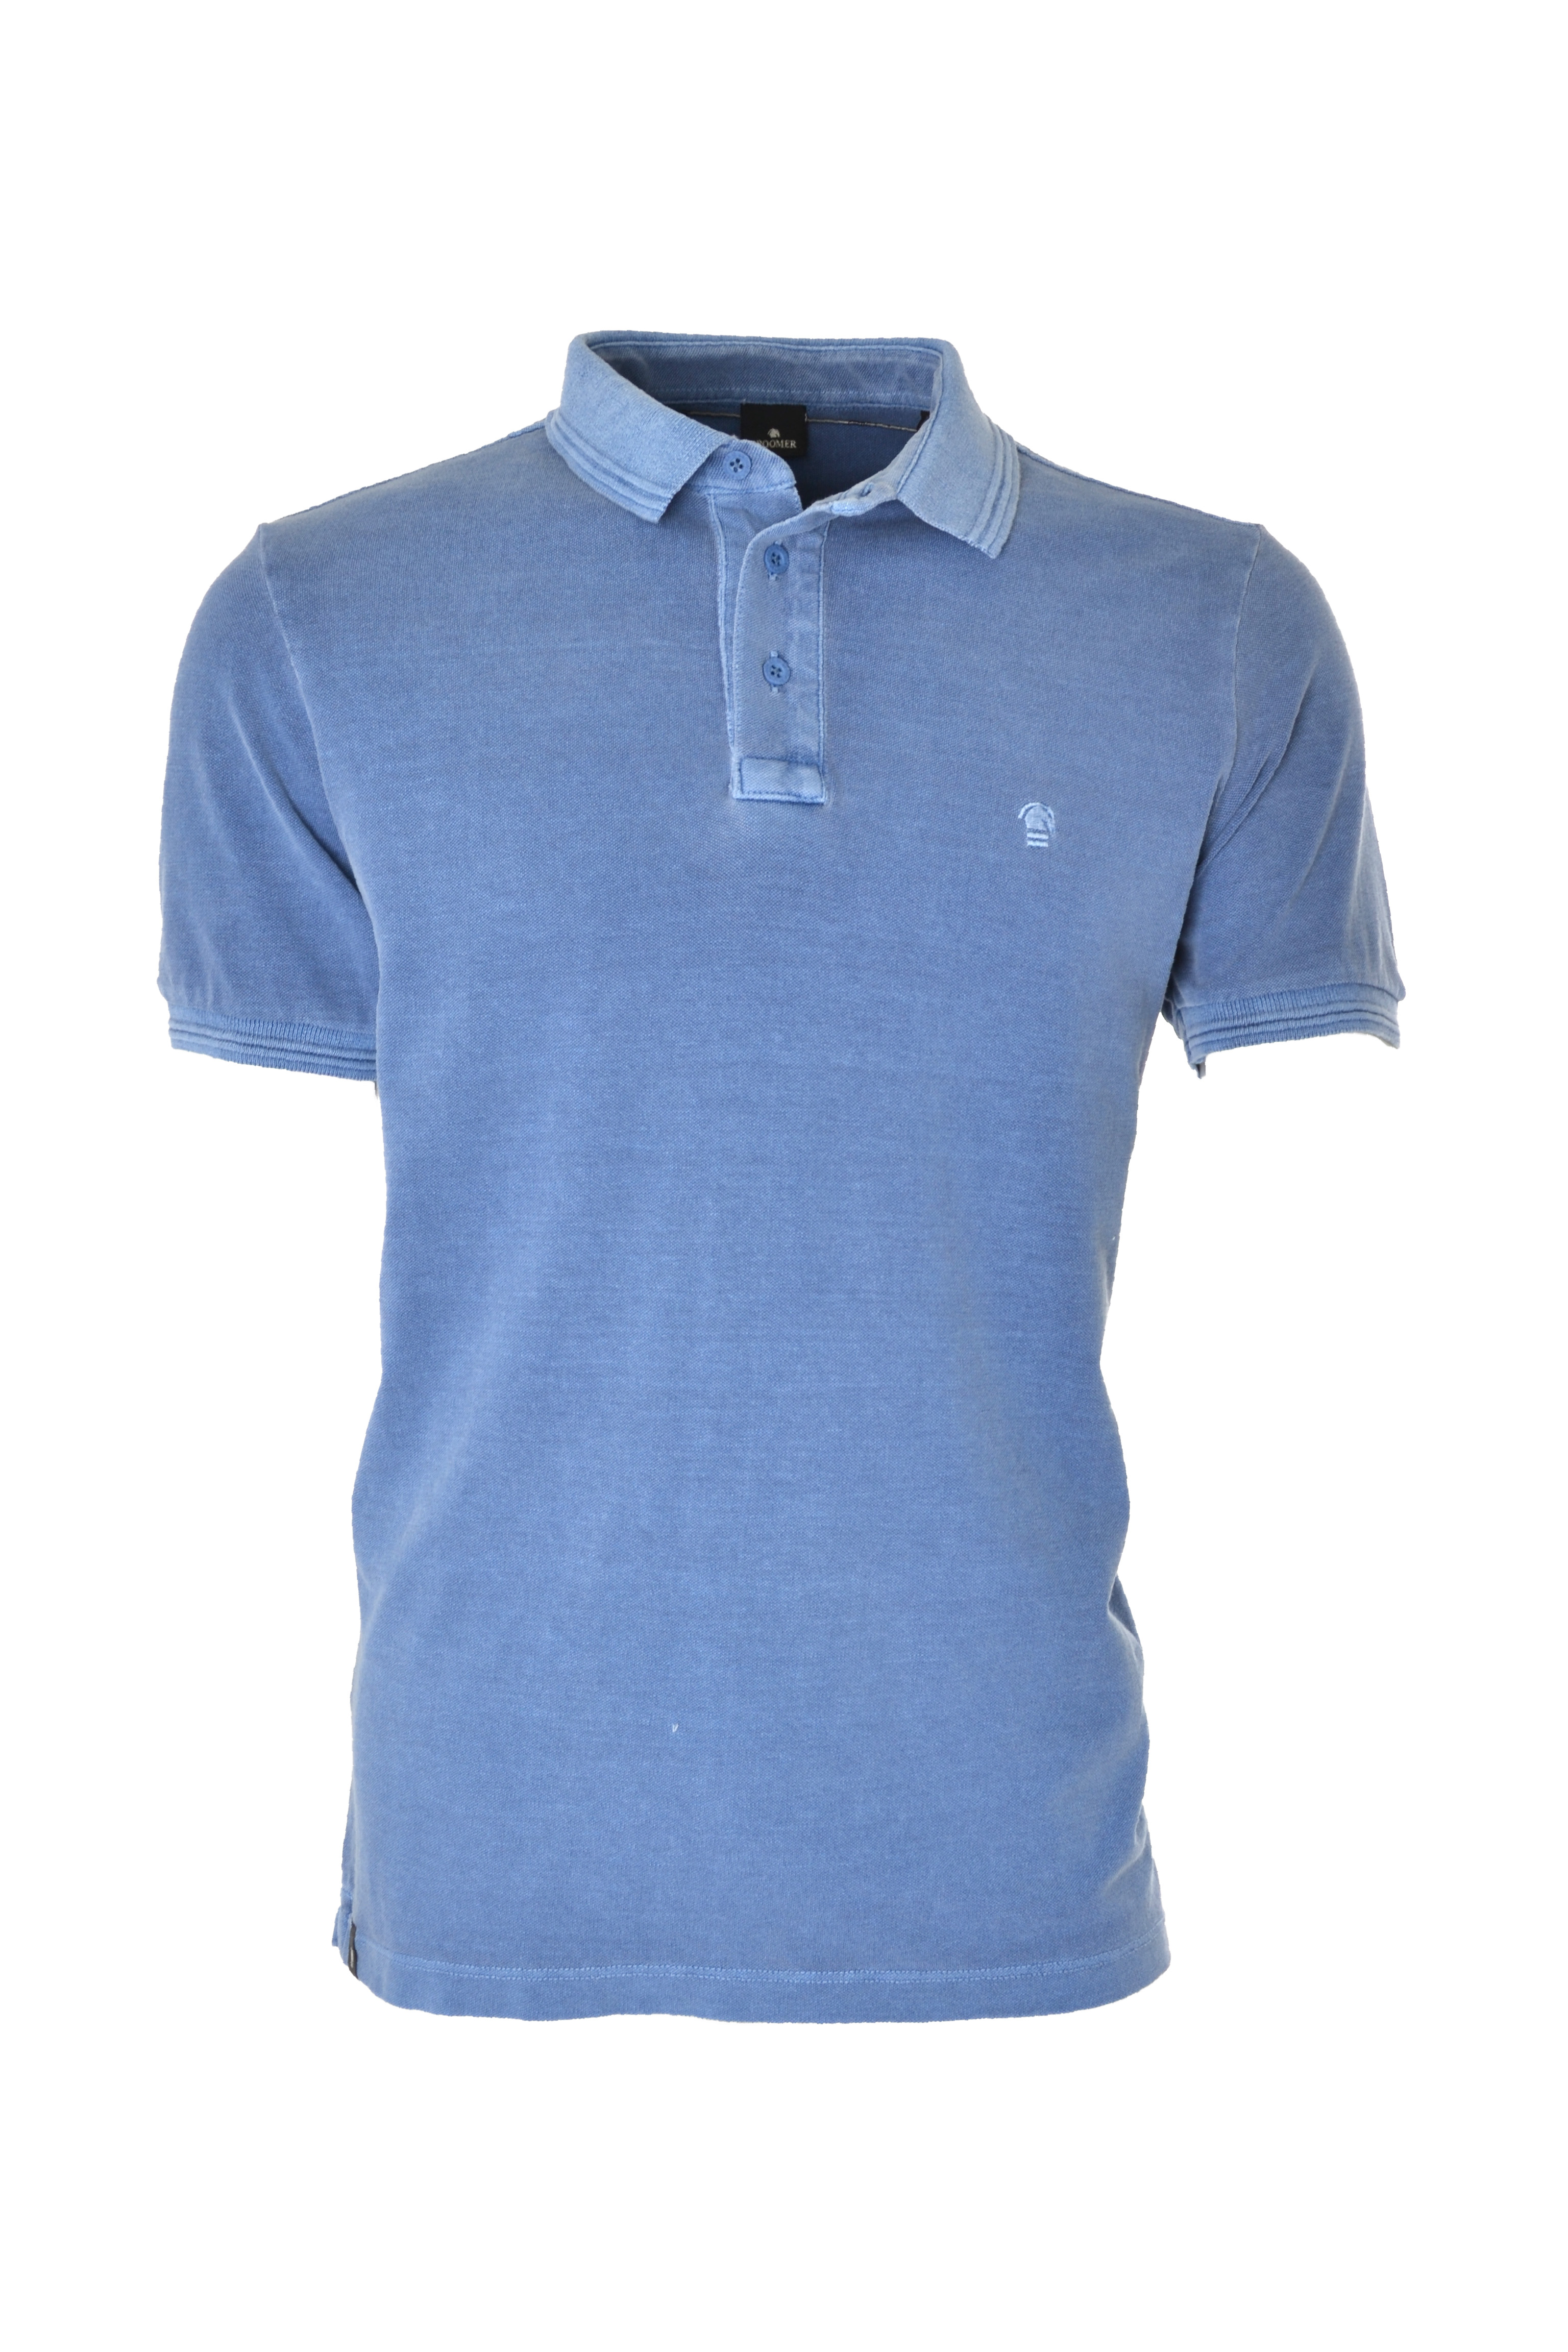 POLO MC CASUAL SLIM ALGODAO PIQUET LISO AZUL ESCURO